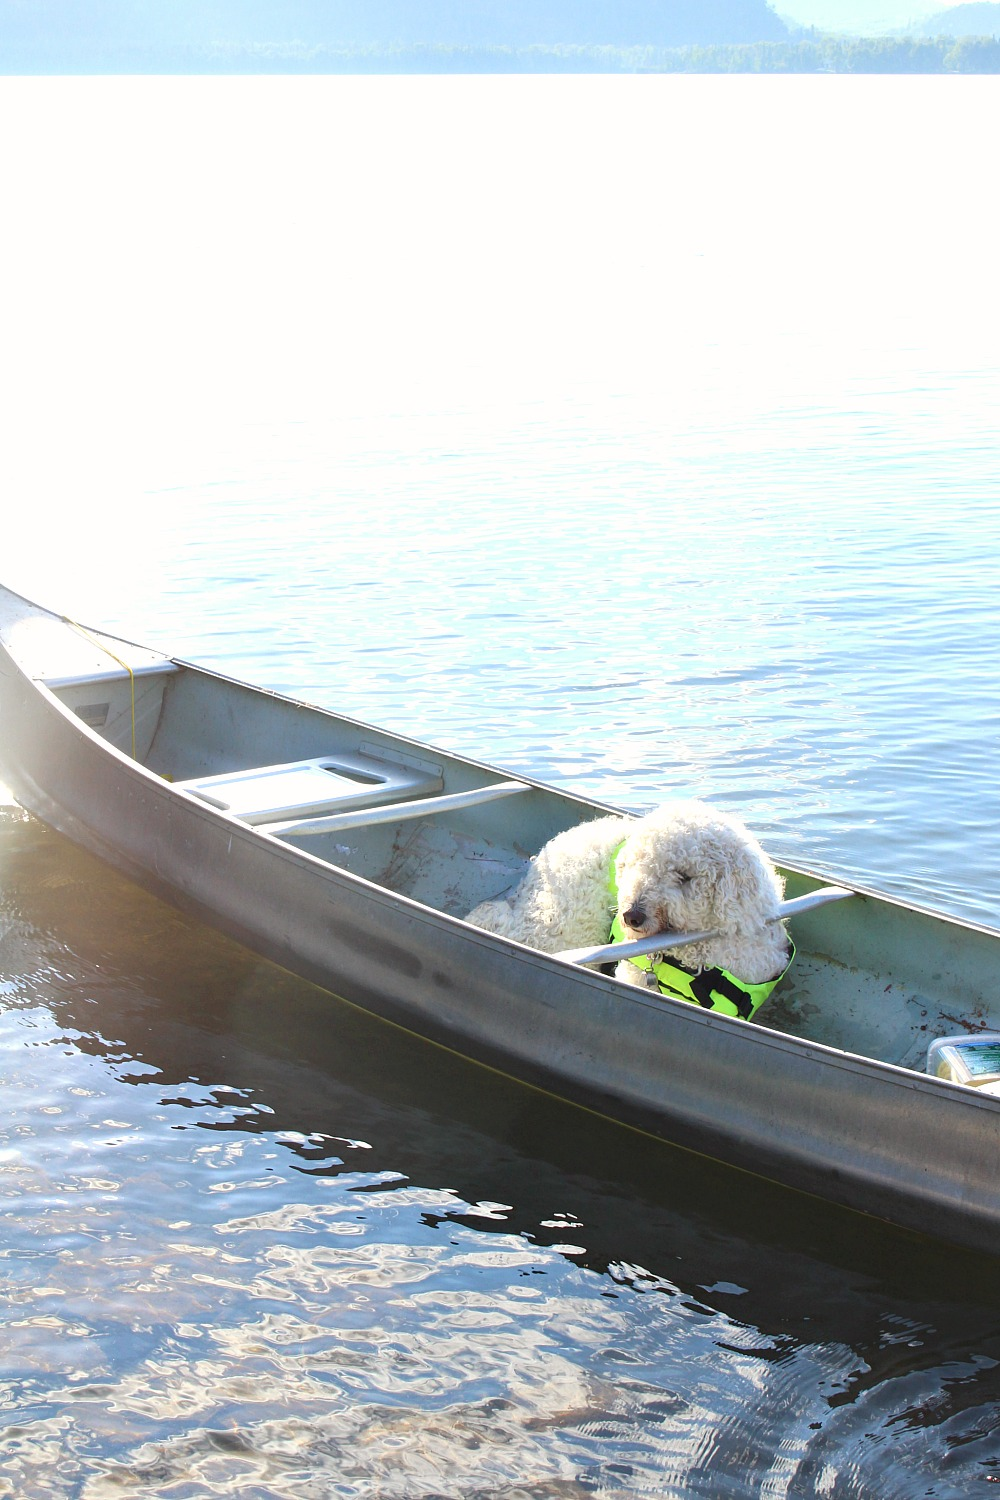 Komondor in a canoe